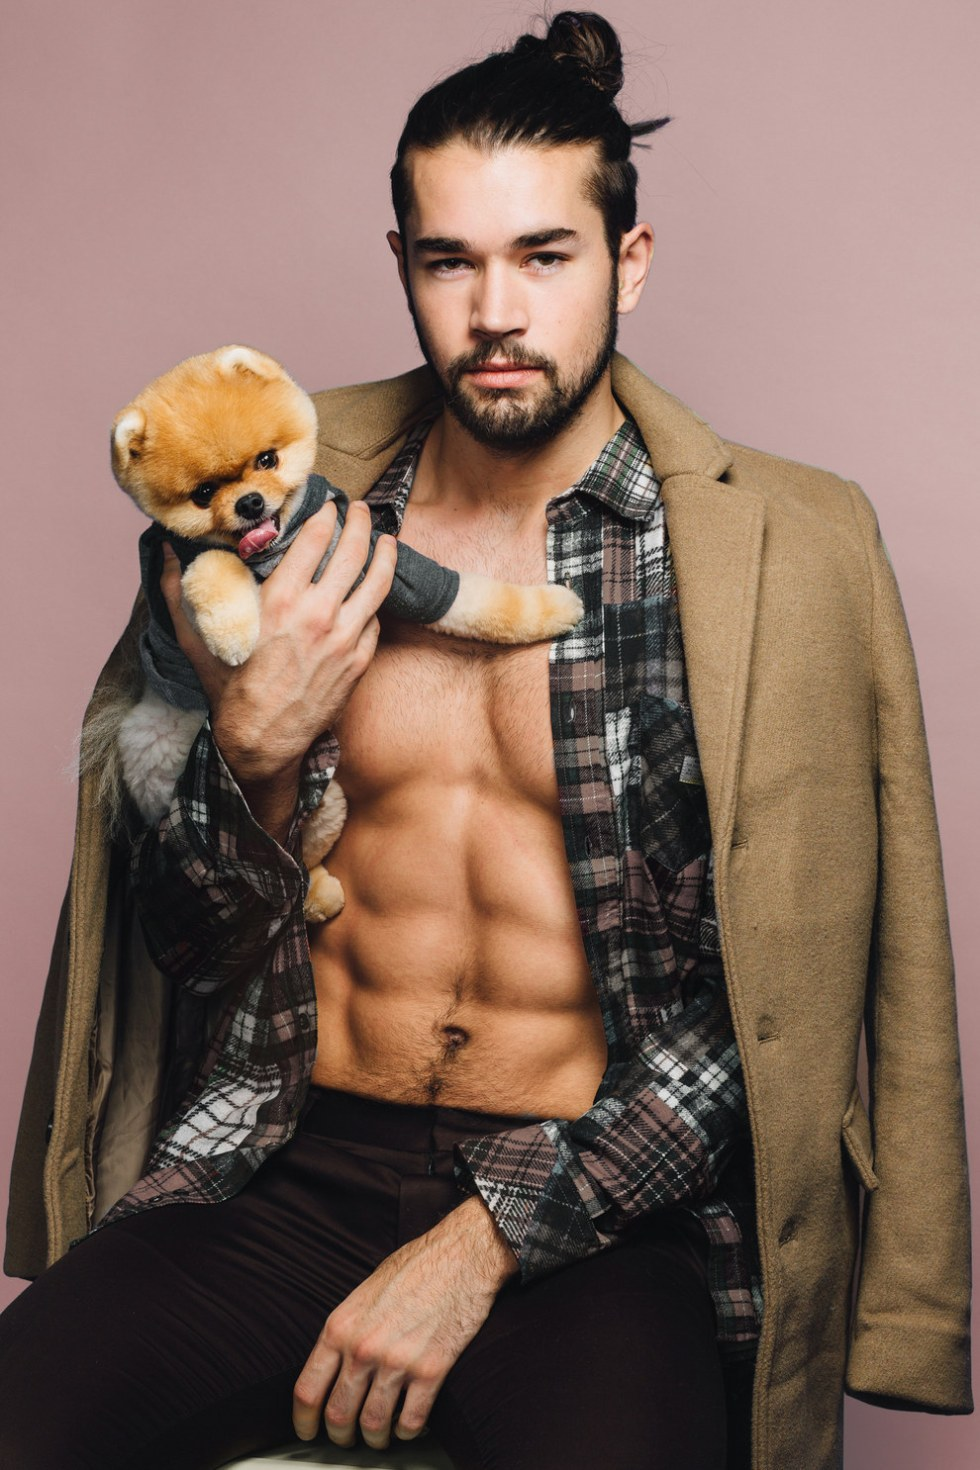 Hello everyone, it's Thursday, and we at BuzzFeed decided that it's imperative we kick your week off to a thirsty start. So please grab a water and prepare your body, because you are in for a sweet, sweet treat. Please enjoy these gratuitous photos of hot men and Jiff the Pomeranian